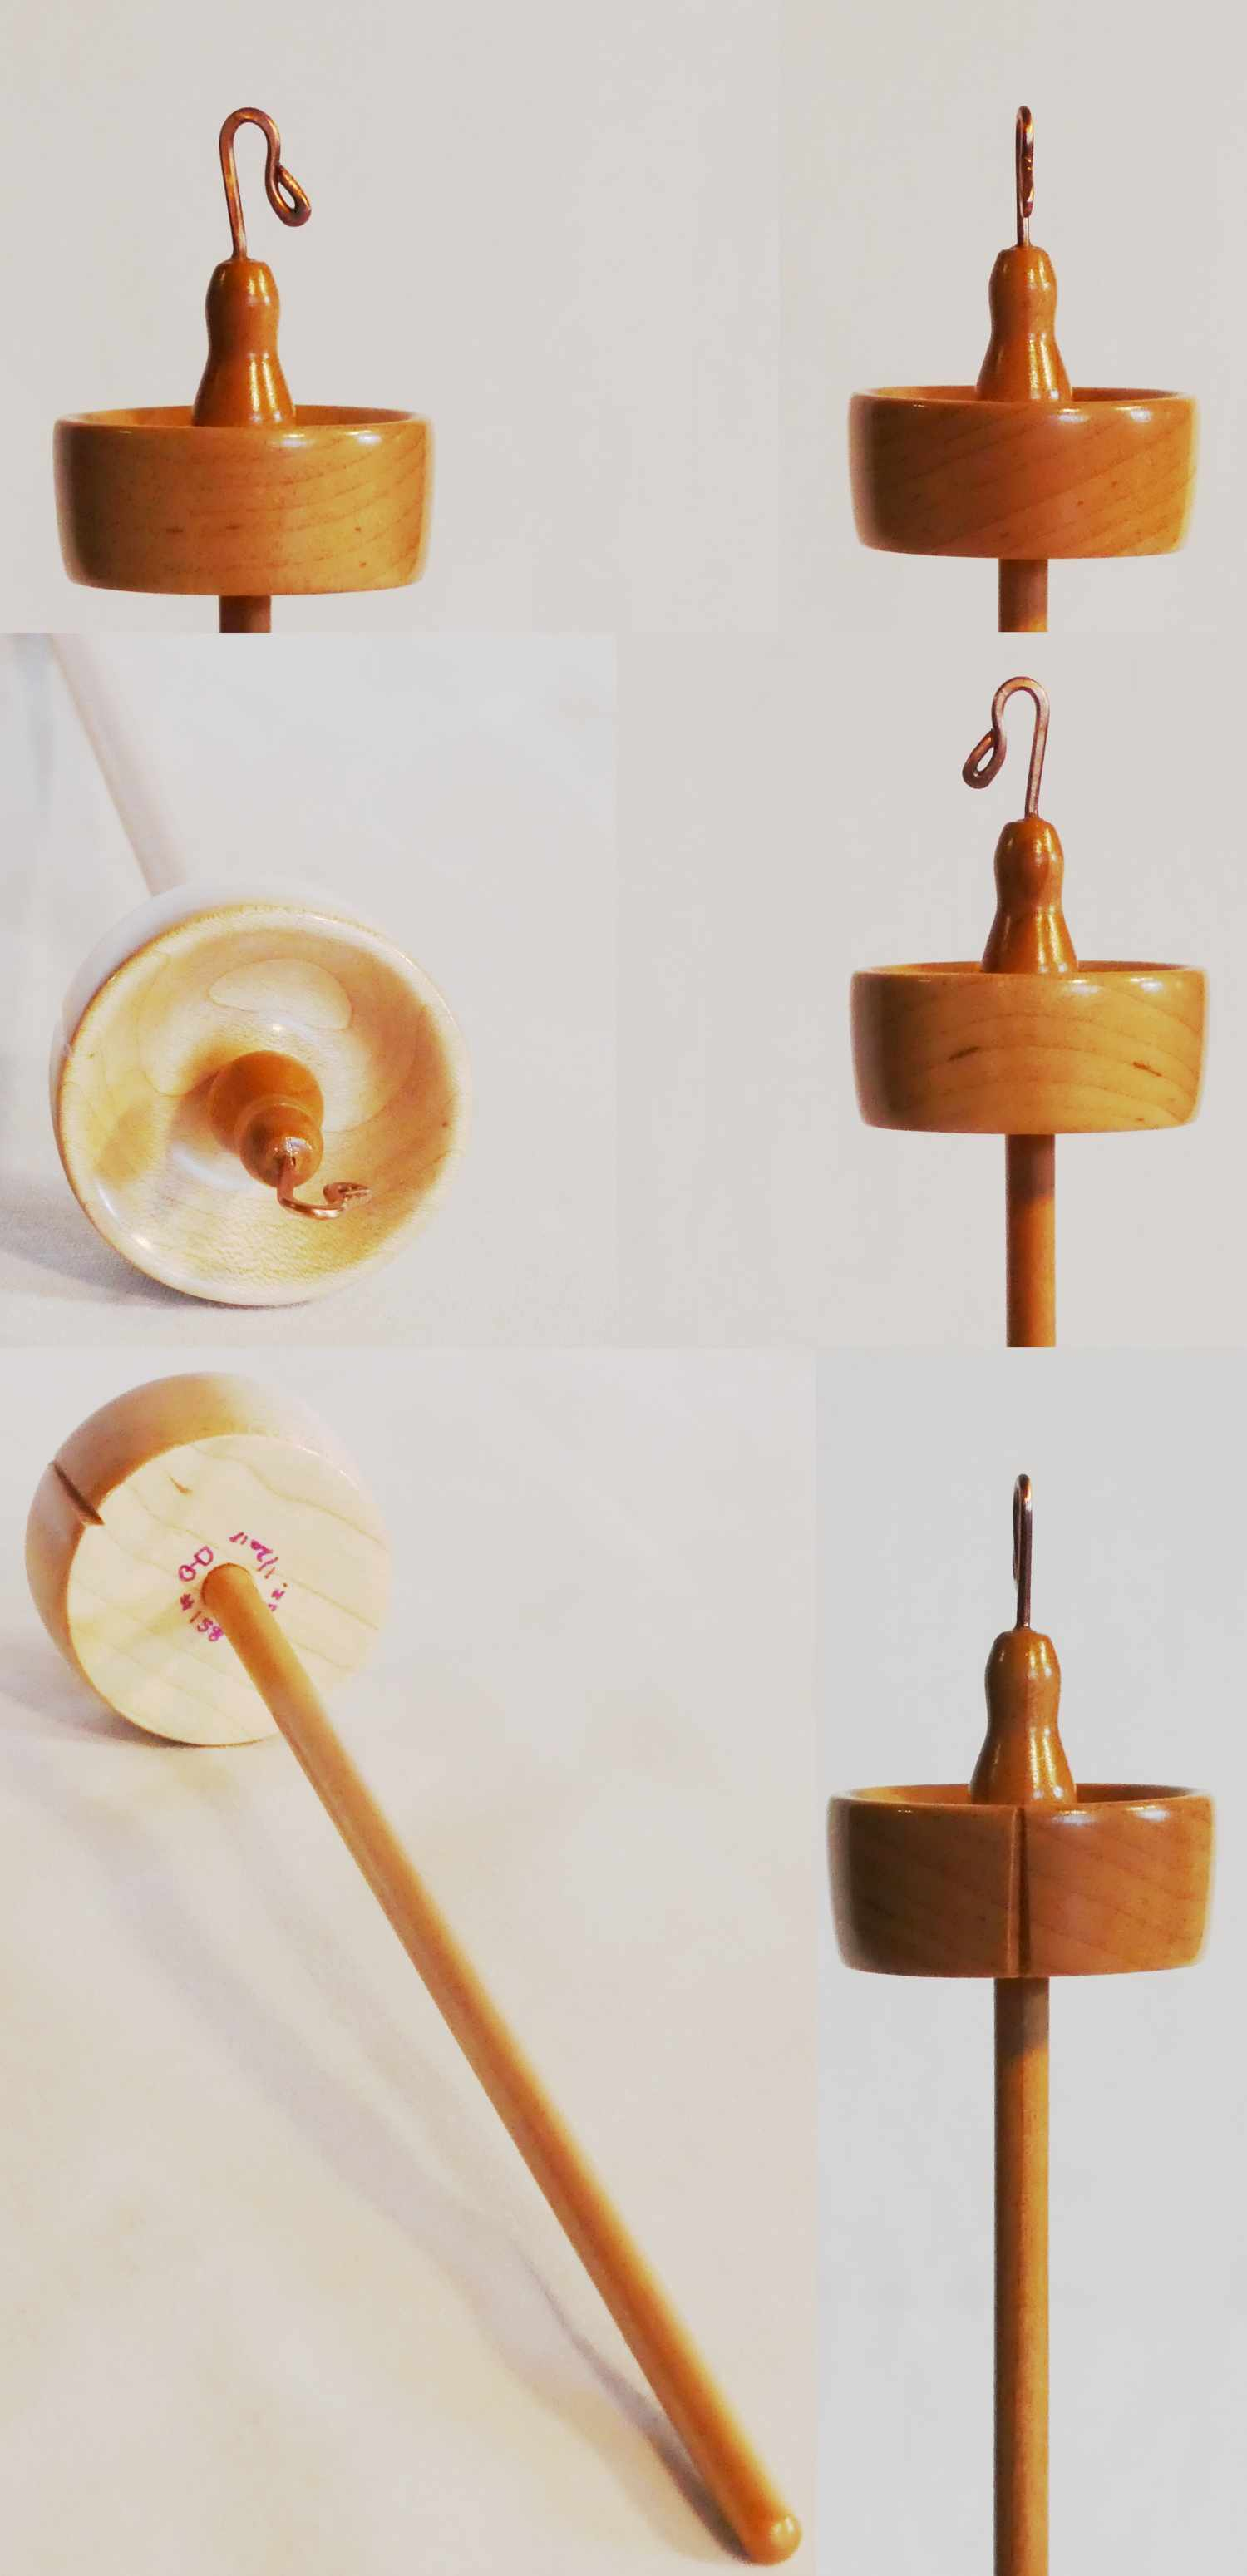 Top whorl drop spindle handcrafted by Cynthia D. Haney in Quilted Maple and Cherry, signed number 158 weighing 0.5 oz.